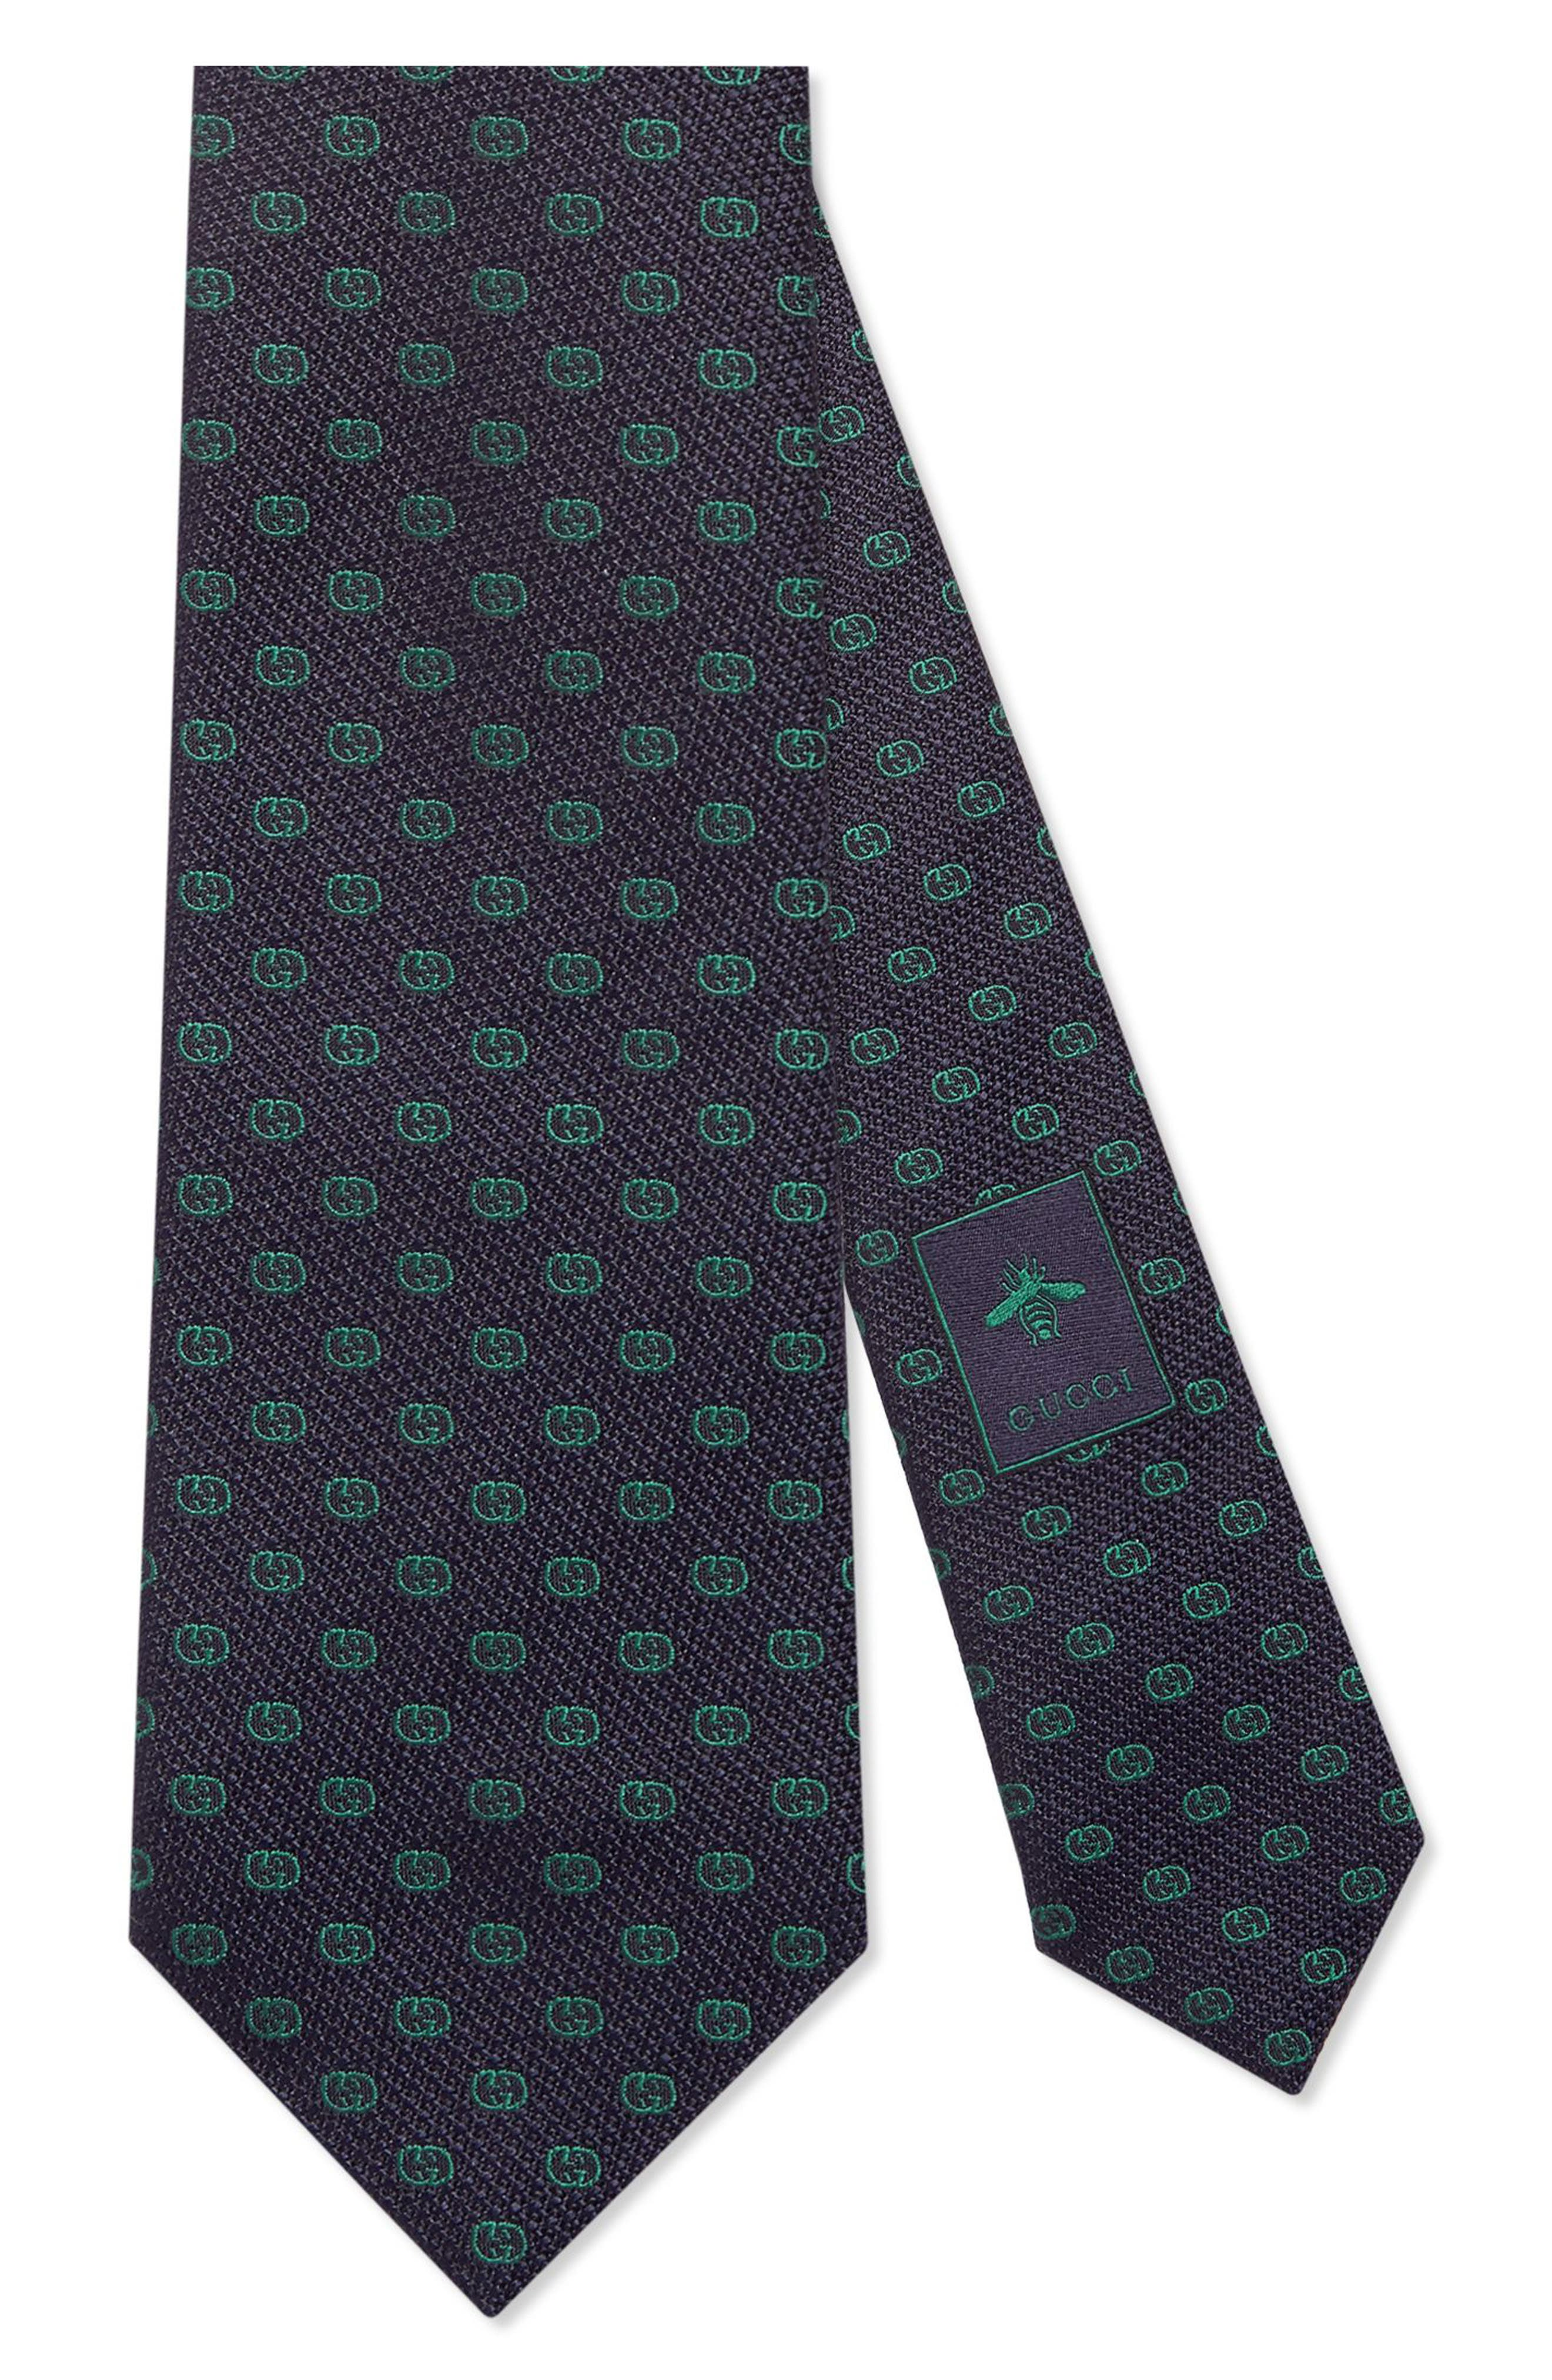 GG Tinev Silk Jacquard Tie,                         Main,                         color, 4066 MIDNIGHT GREEN